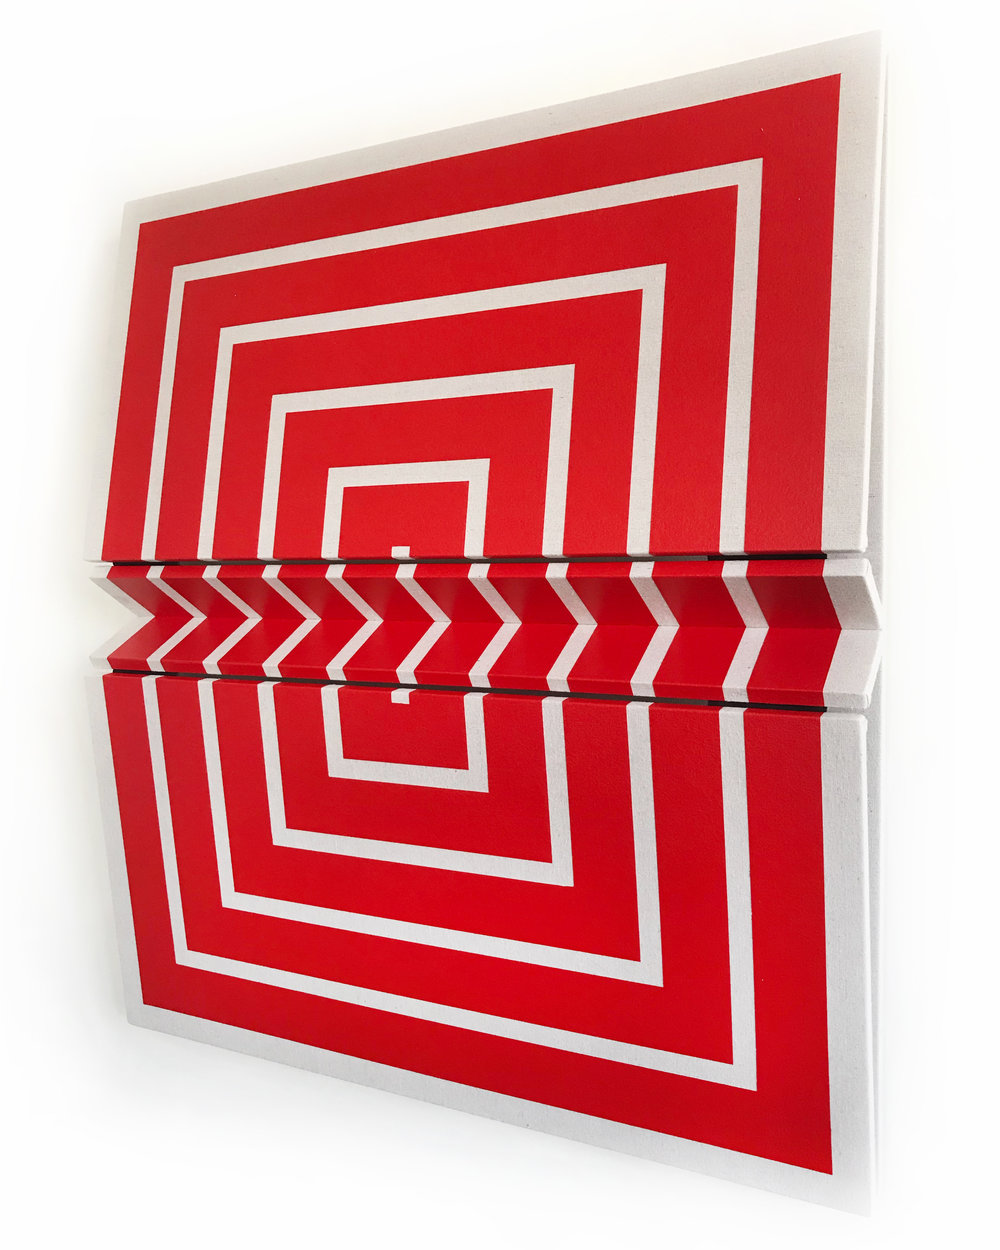 Red Concentric Angle 2.jpg